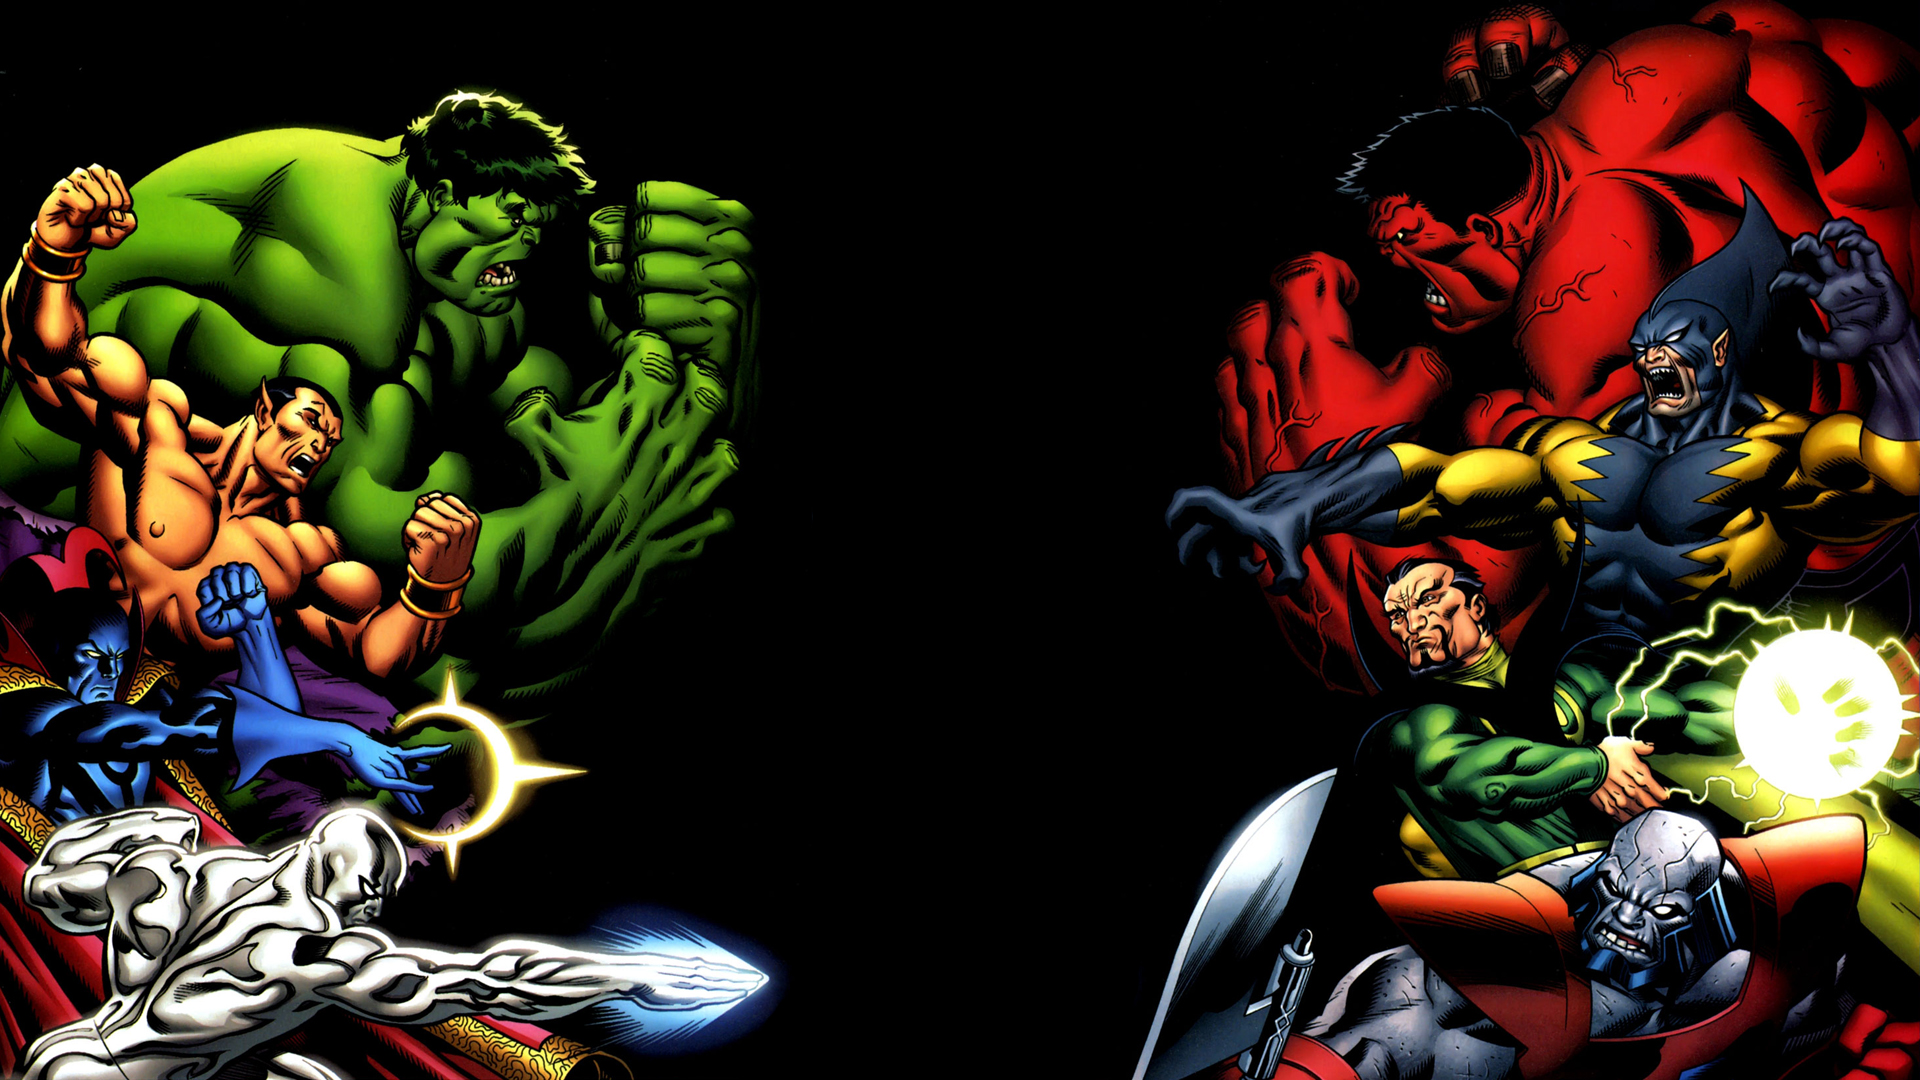 hd wallpapers super herois - photo #13